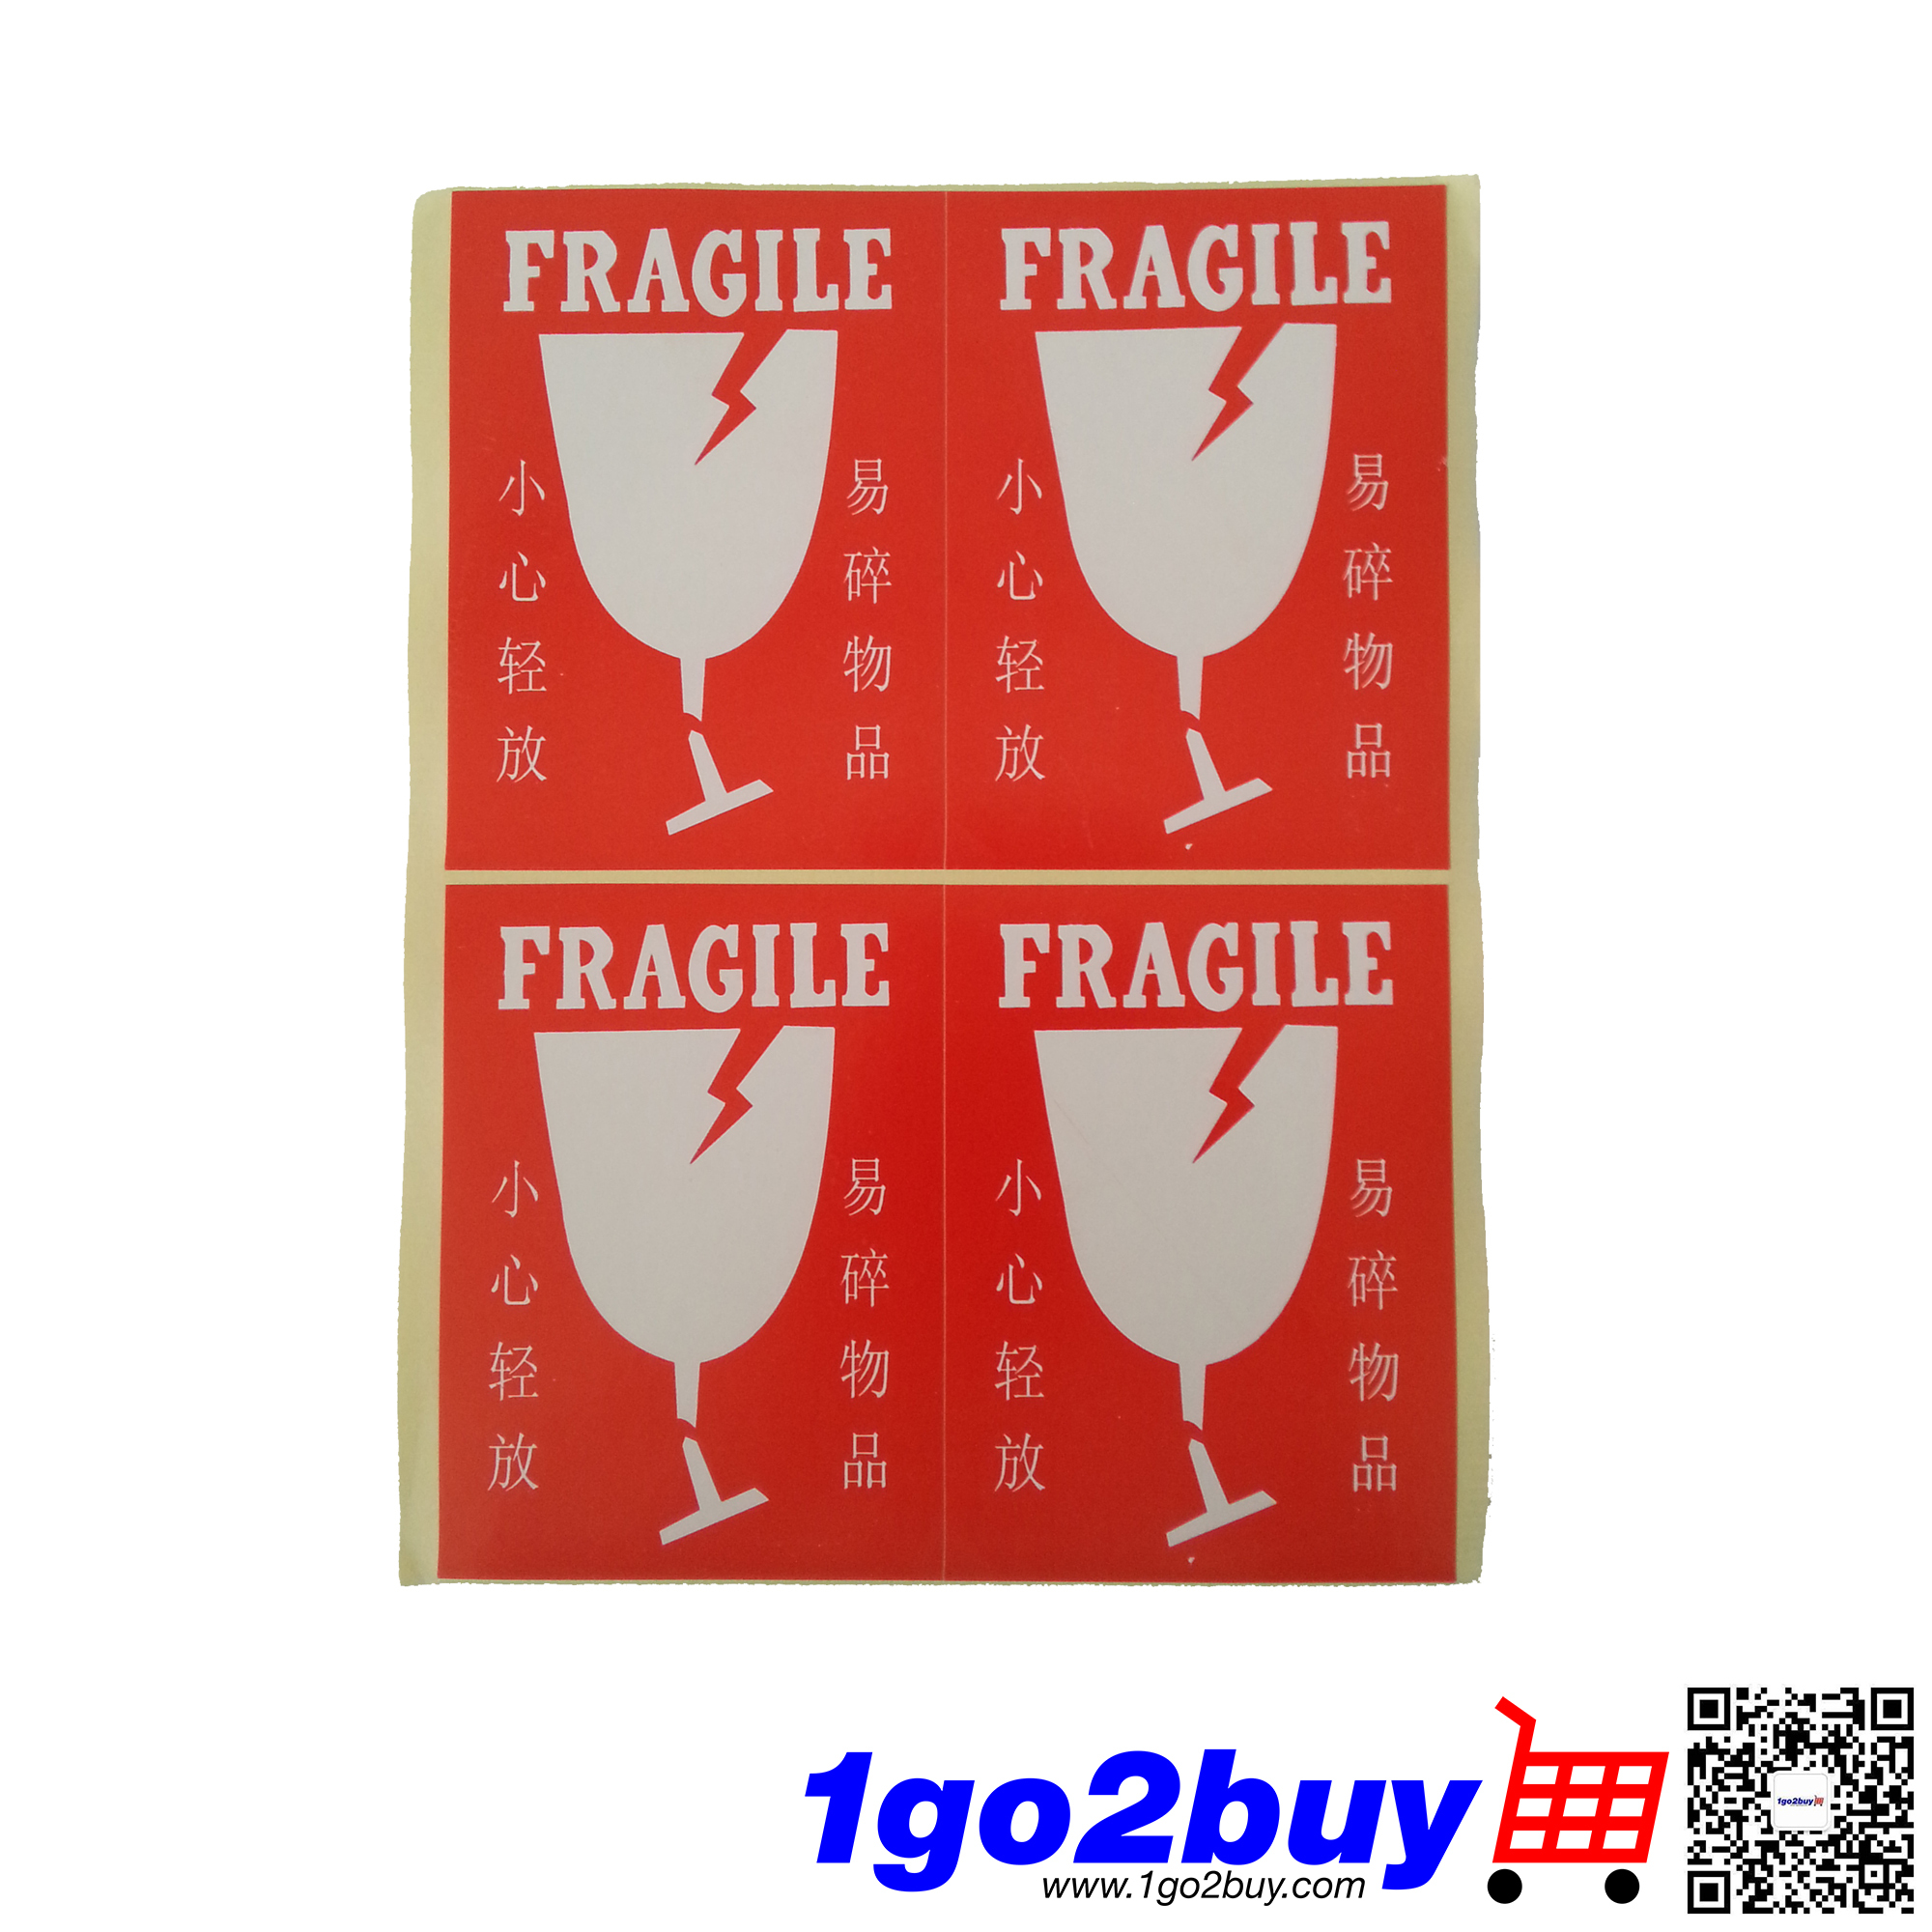 sticker new fragile red 15 sh end 9 7 2018 5 56 pm